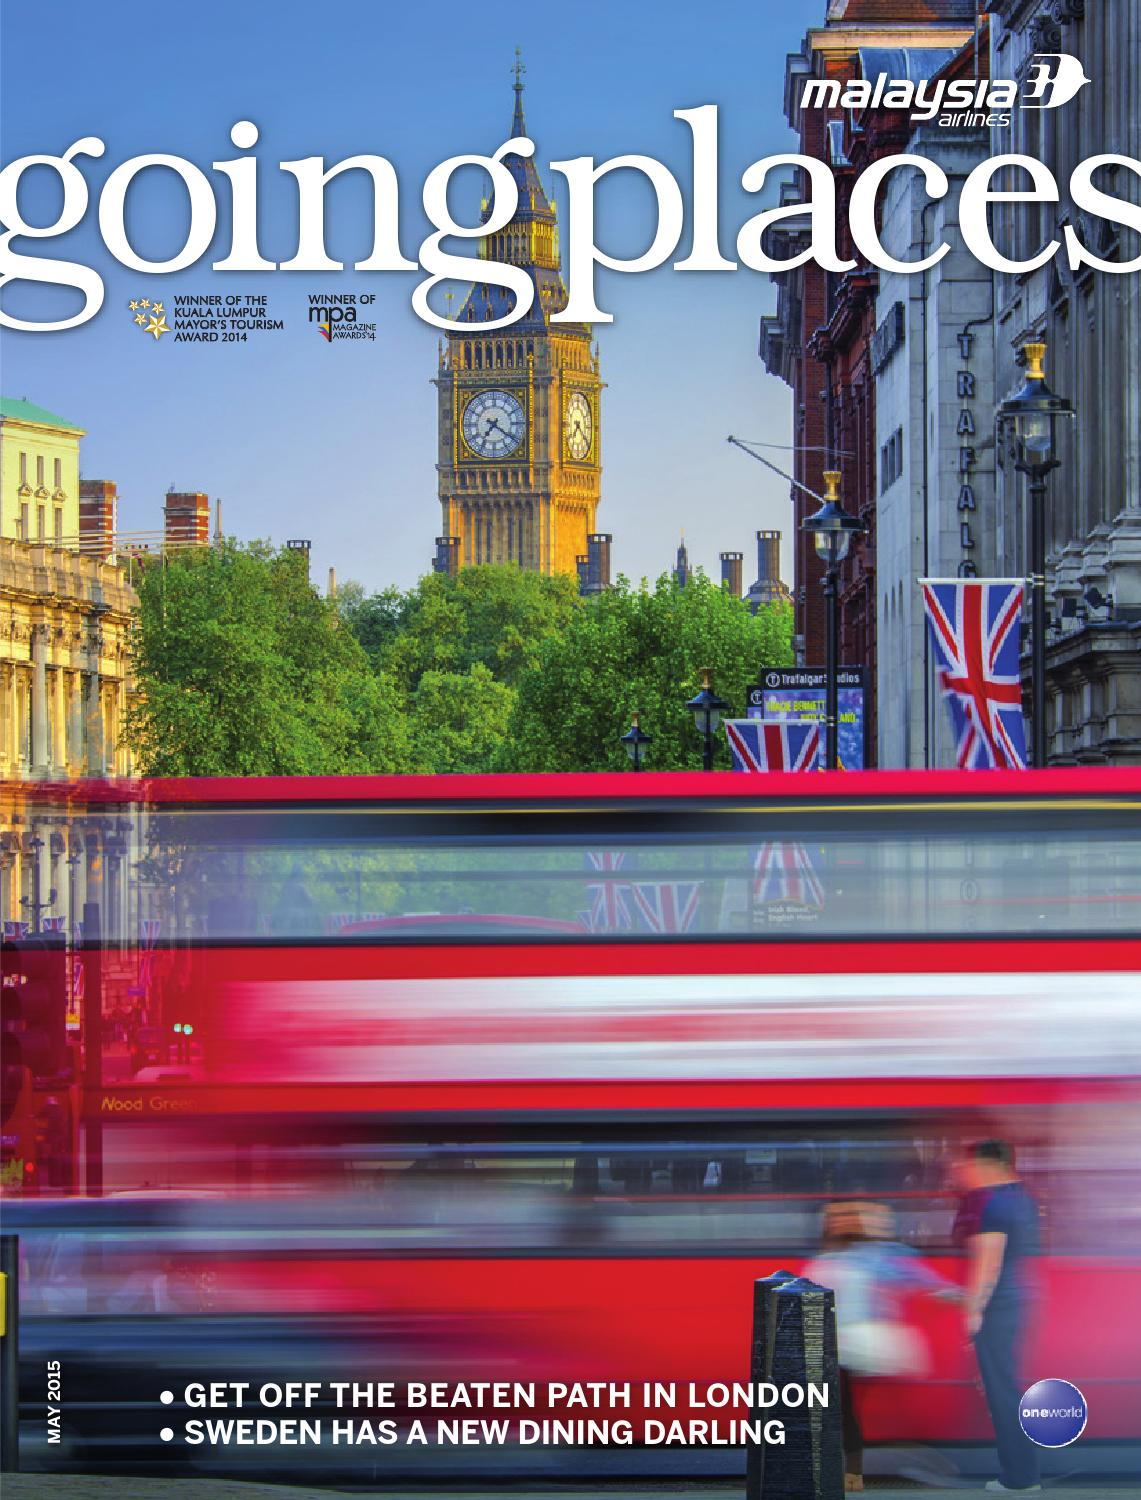 Going Places May 2015 By Spafax Malaysia Issuu Filter Udara Std Kc Nex